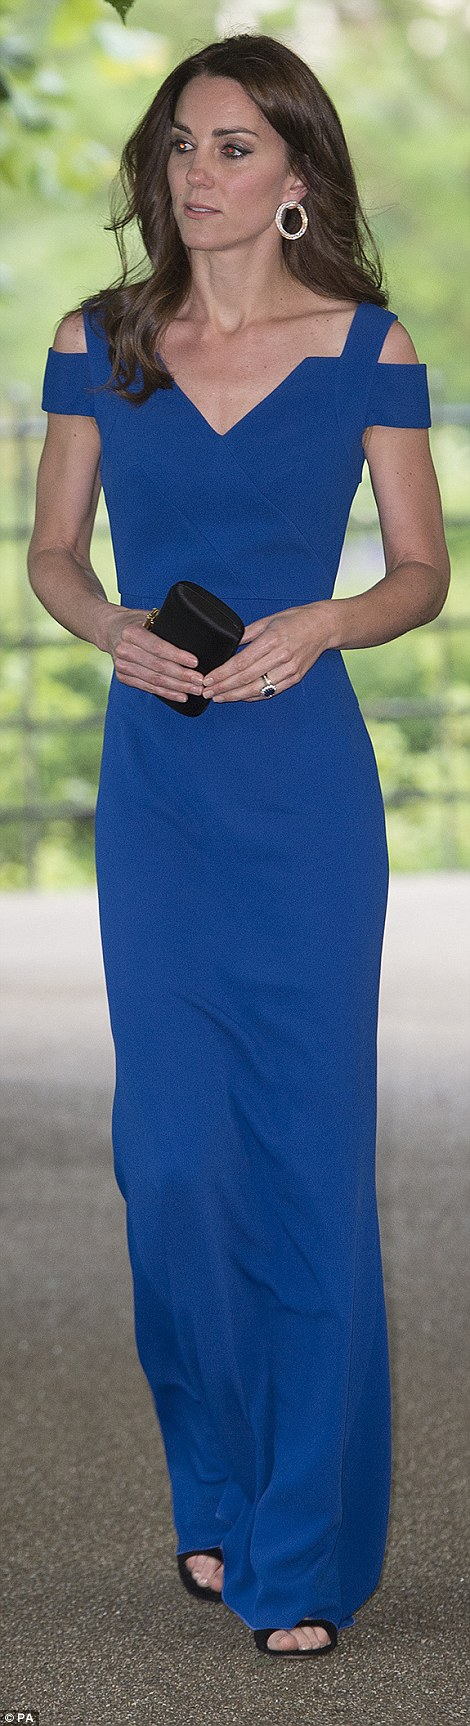 The Duchess showcased her slim figure in a dazzling cut-out shoulder dress in royal blue.